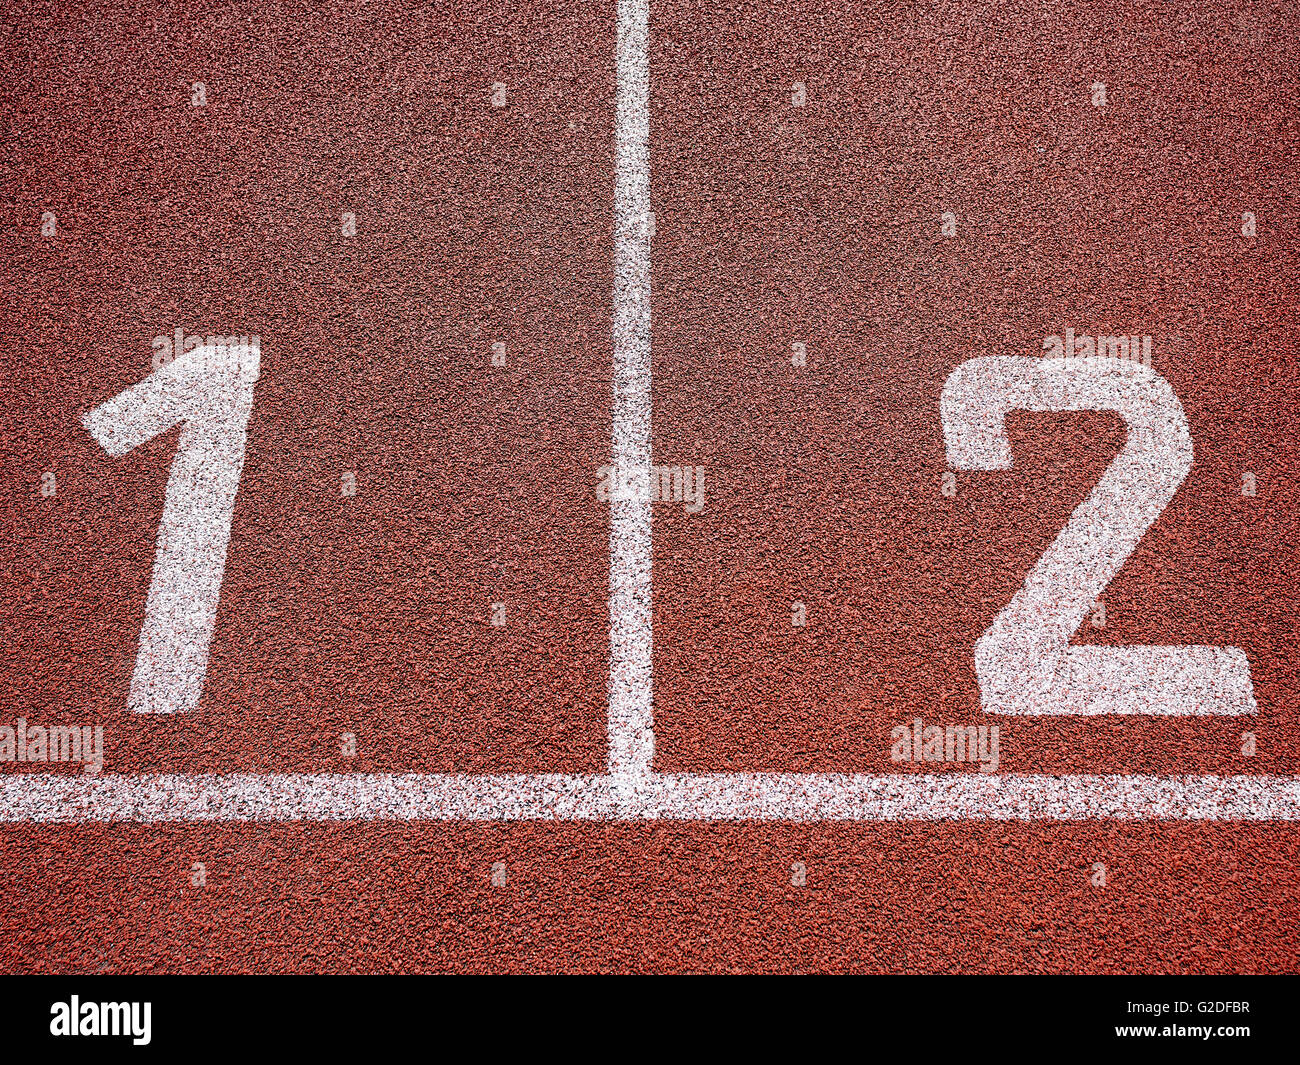 All-weather running track - Stock Image